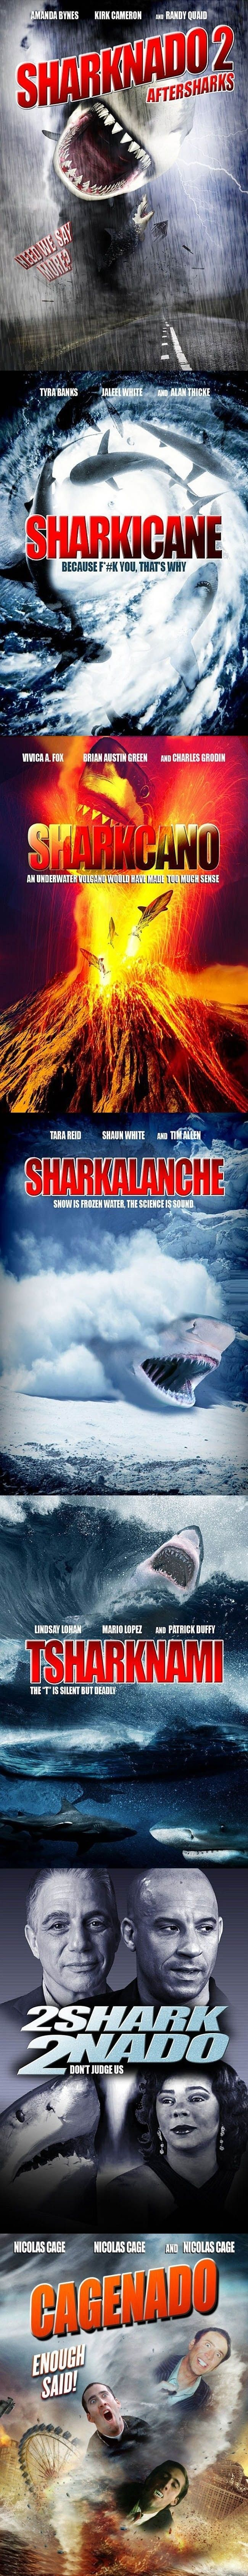 After Sharknado 1  - funny pictures #funnypictures